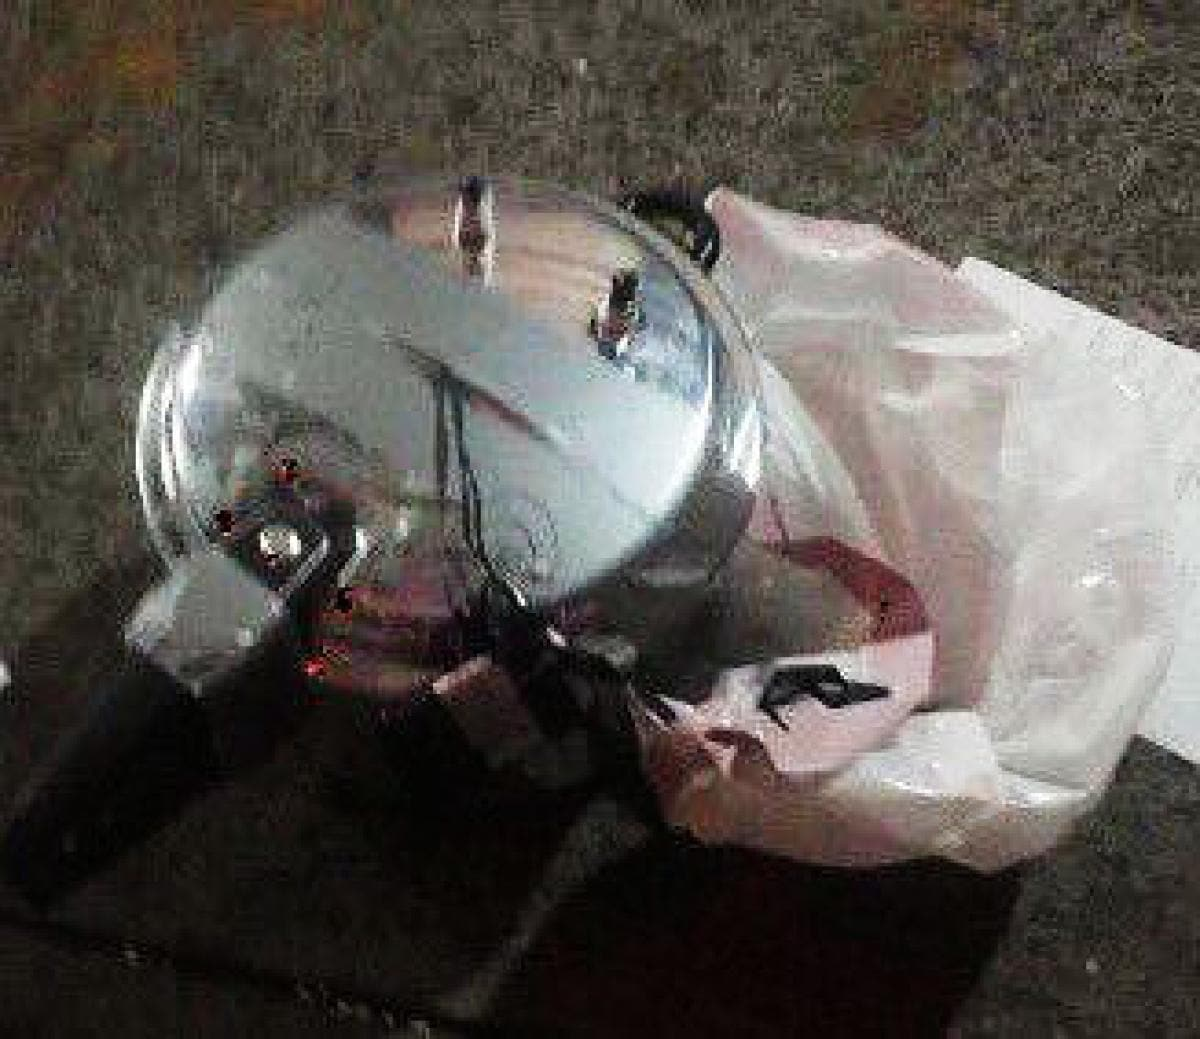 A pressure cooker bomb was found wrapped in a white garbage bag a few blocks from the first blast site. (Photo: NY Daily News)